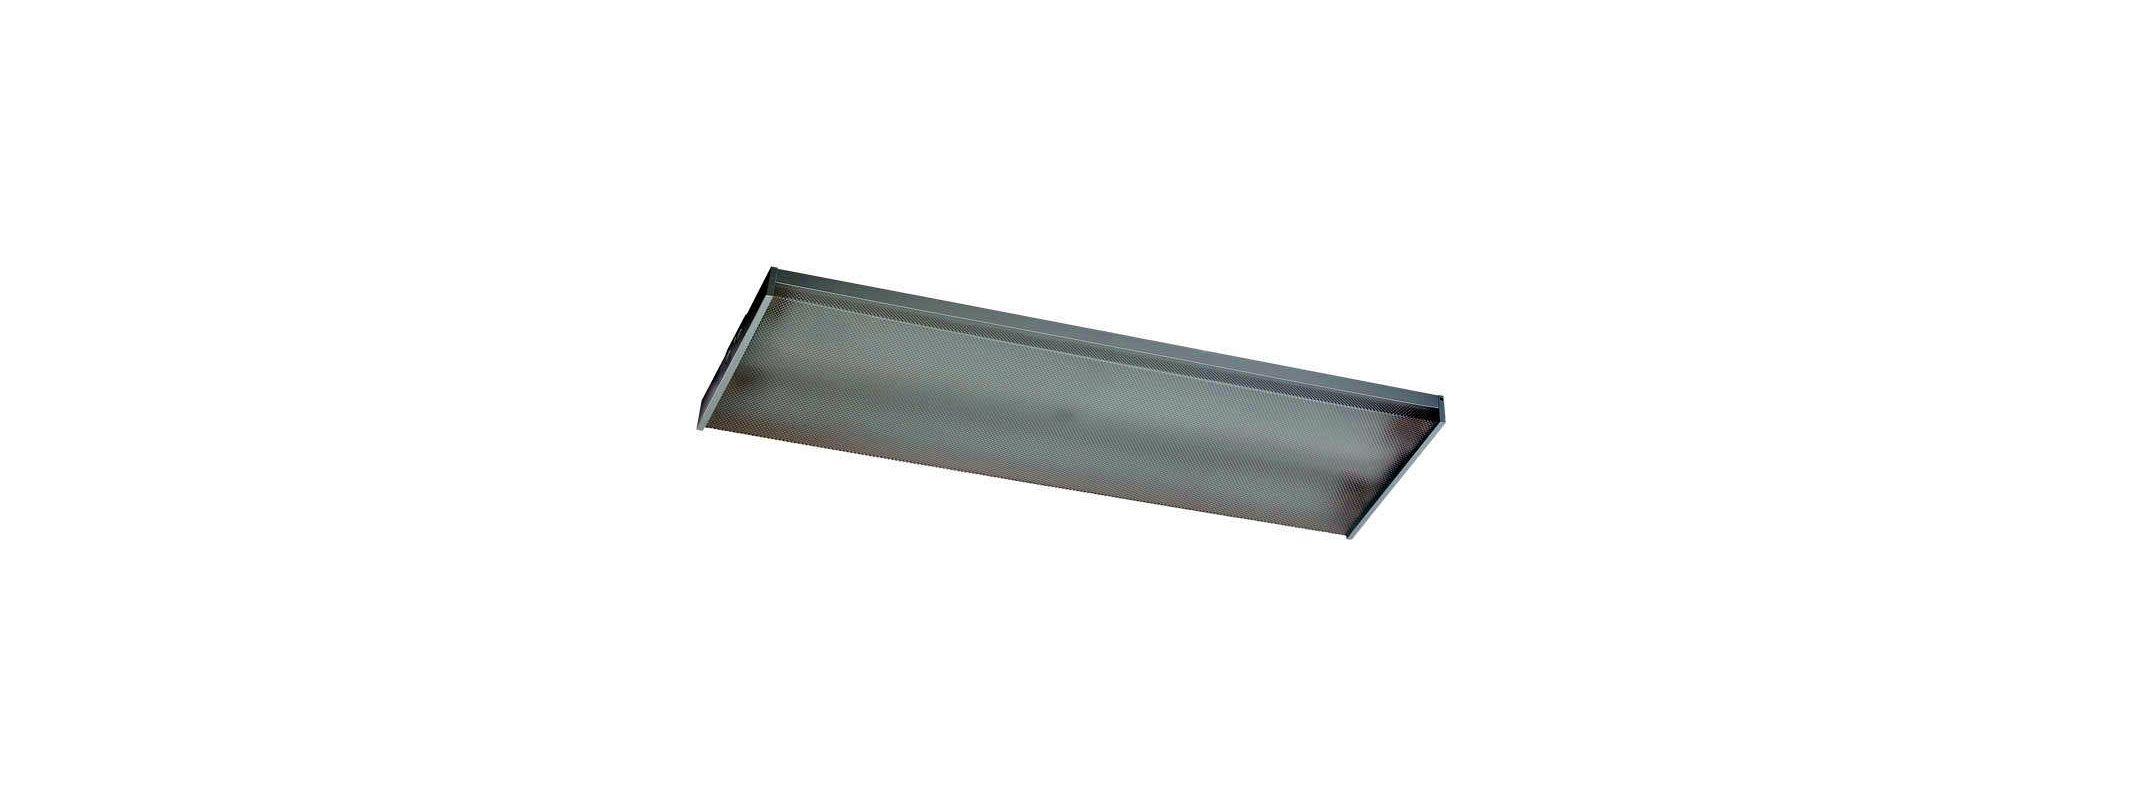 Quorum International Q82049-4 4 Light Flushmount Fluorescent Energy